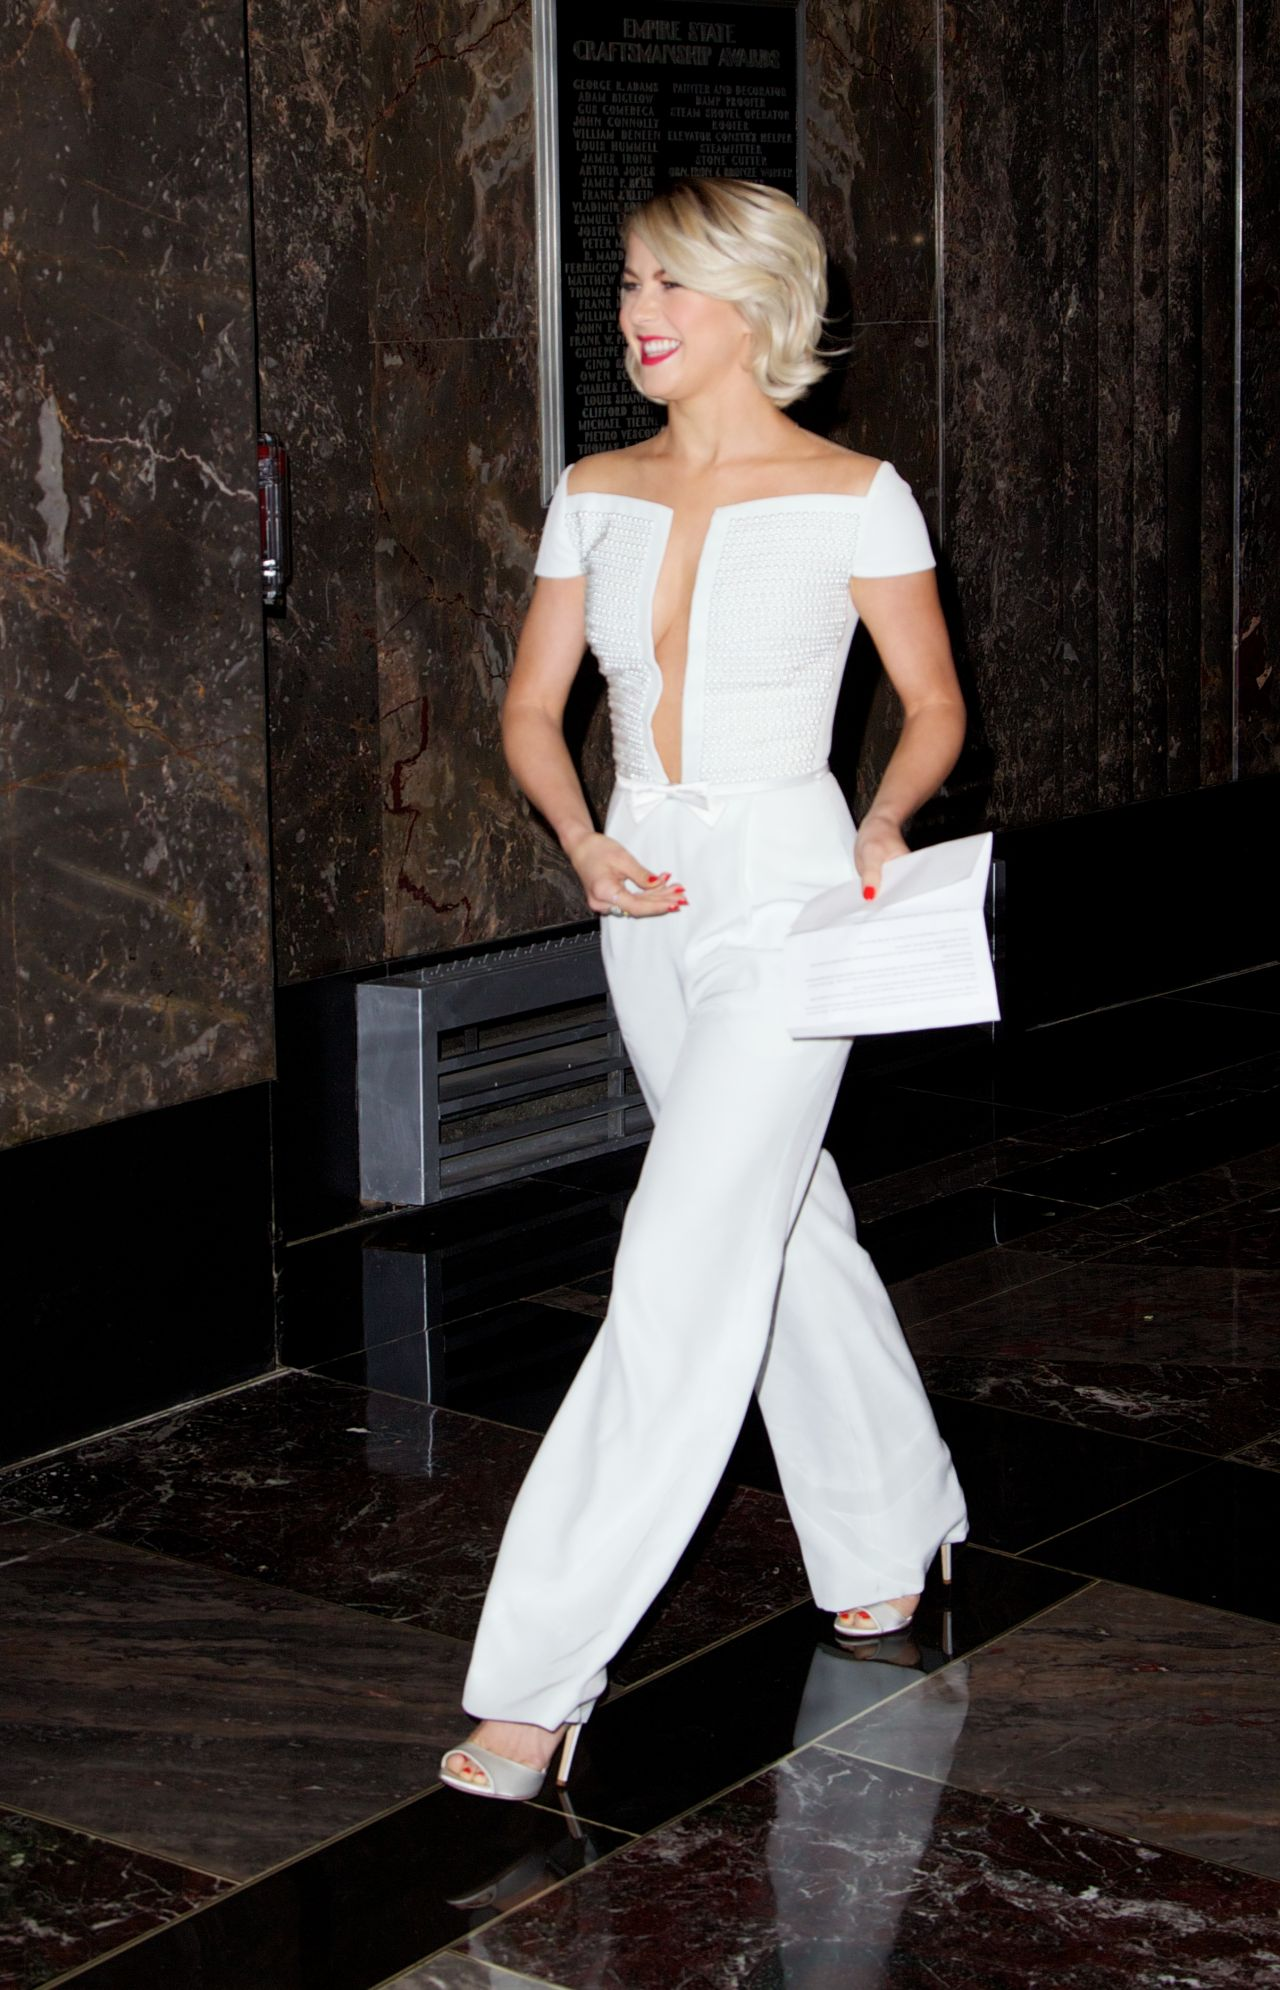 julianne-hough-at-the-empire-state-building-in-new-york-city-oct.-2014_2